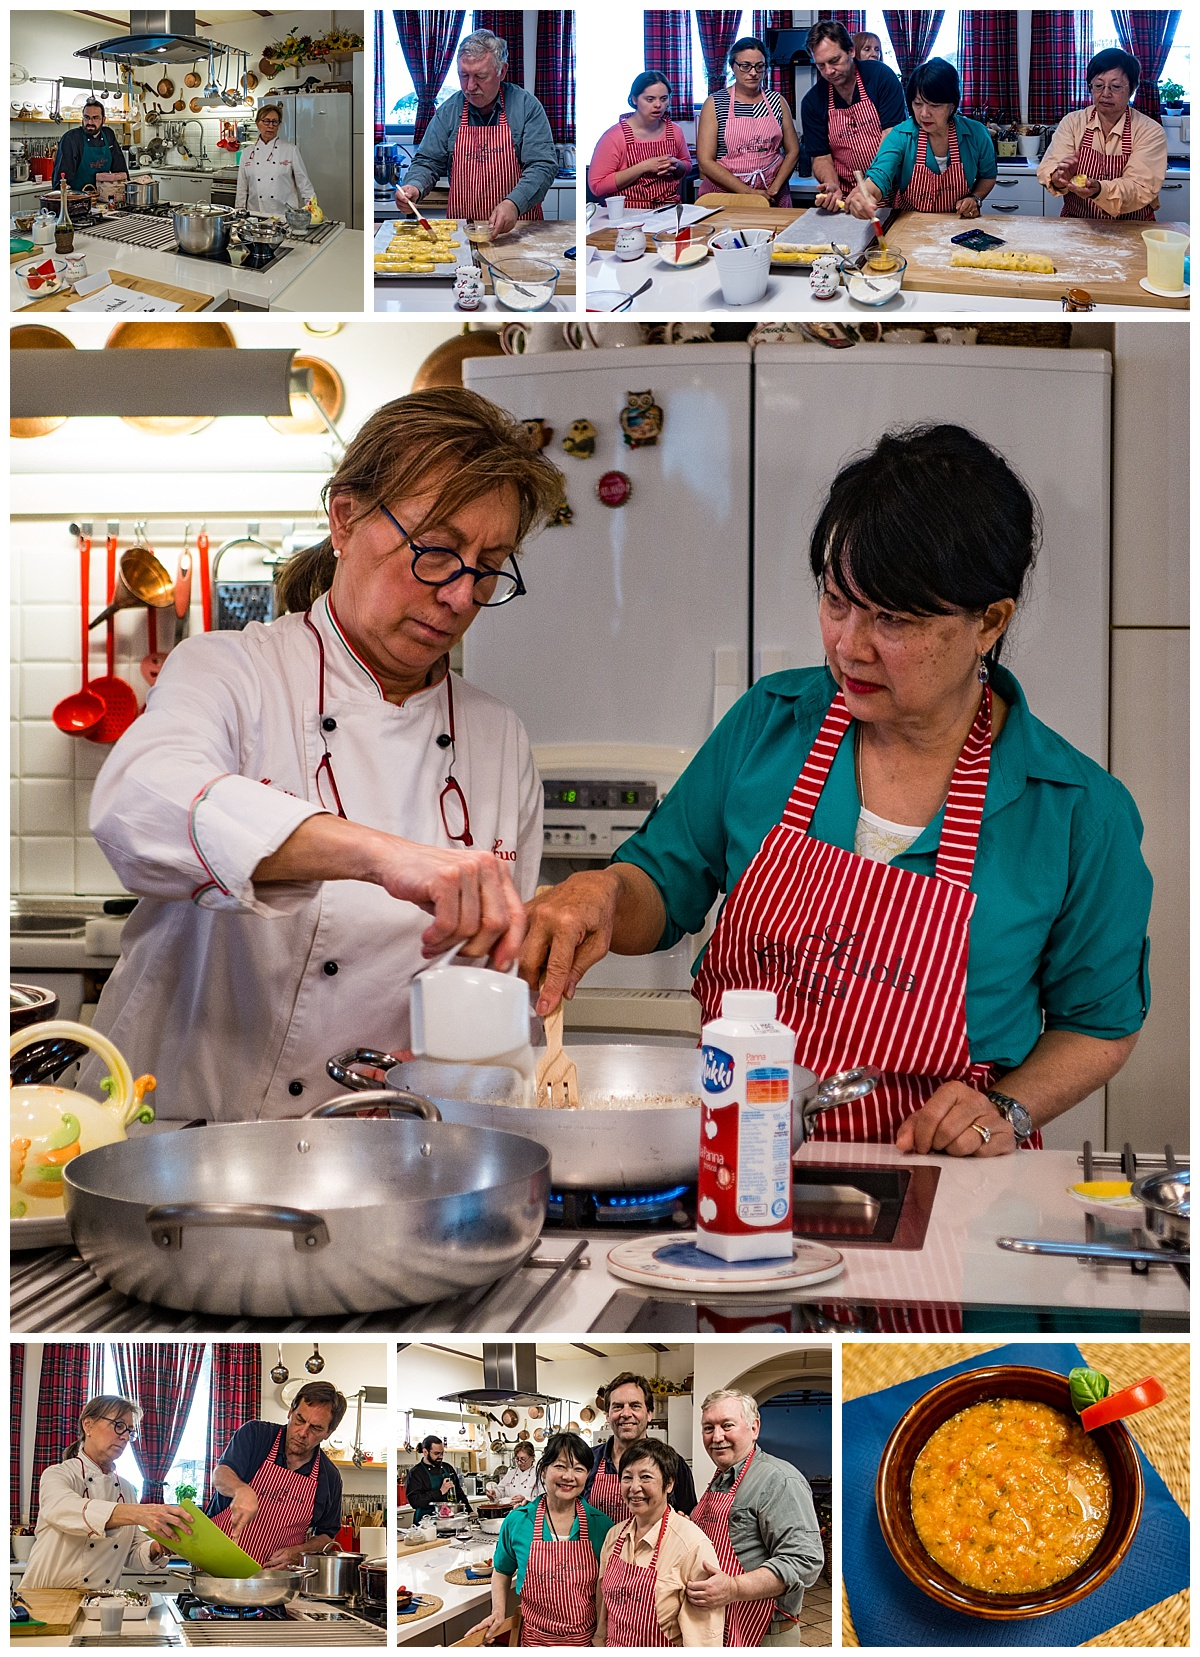 Tuscany Italy - Cooking School